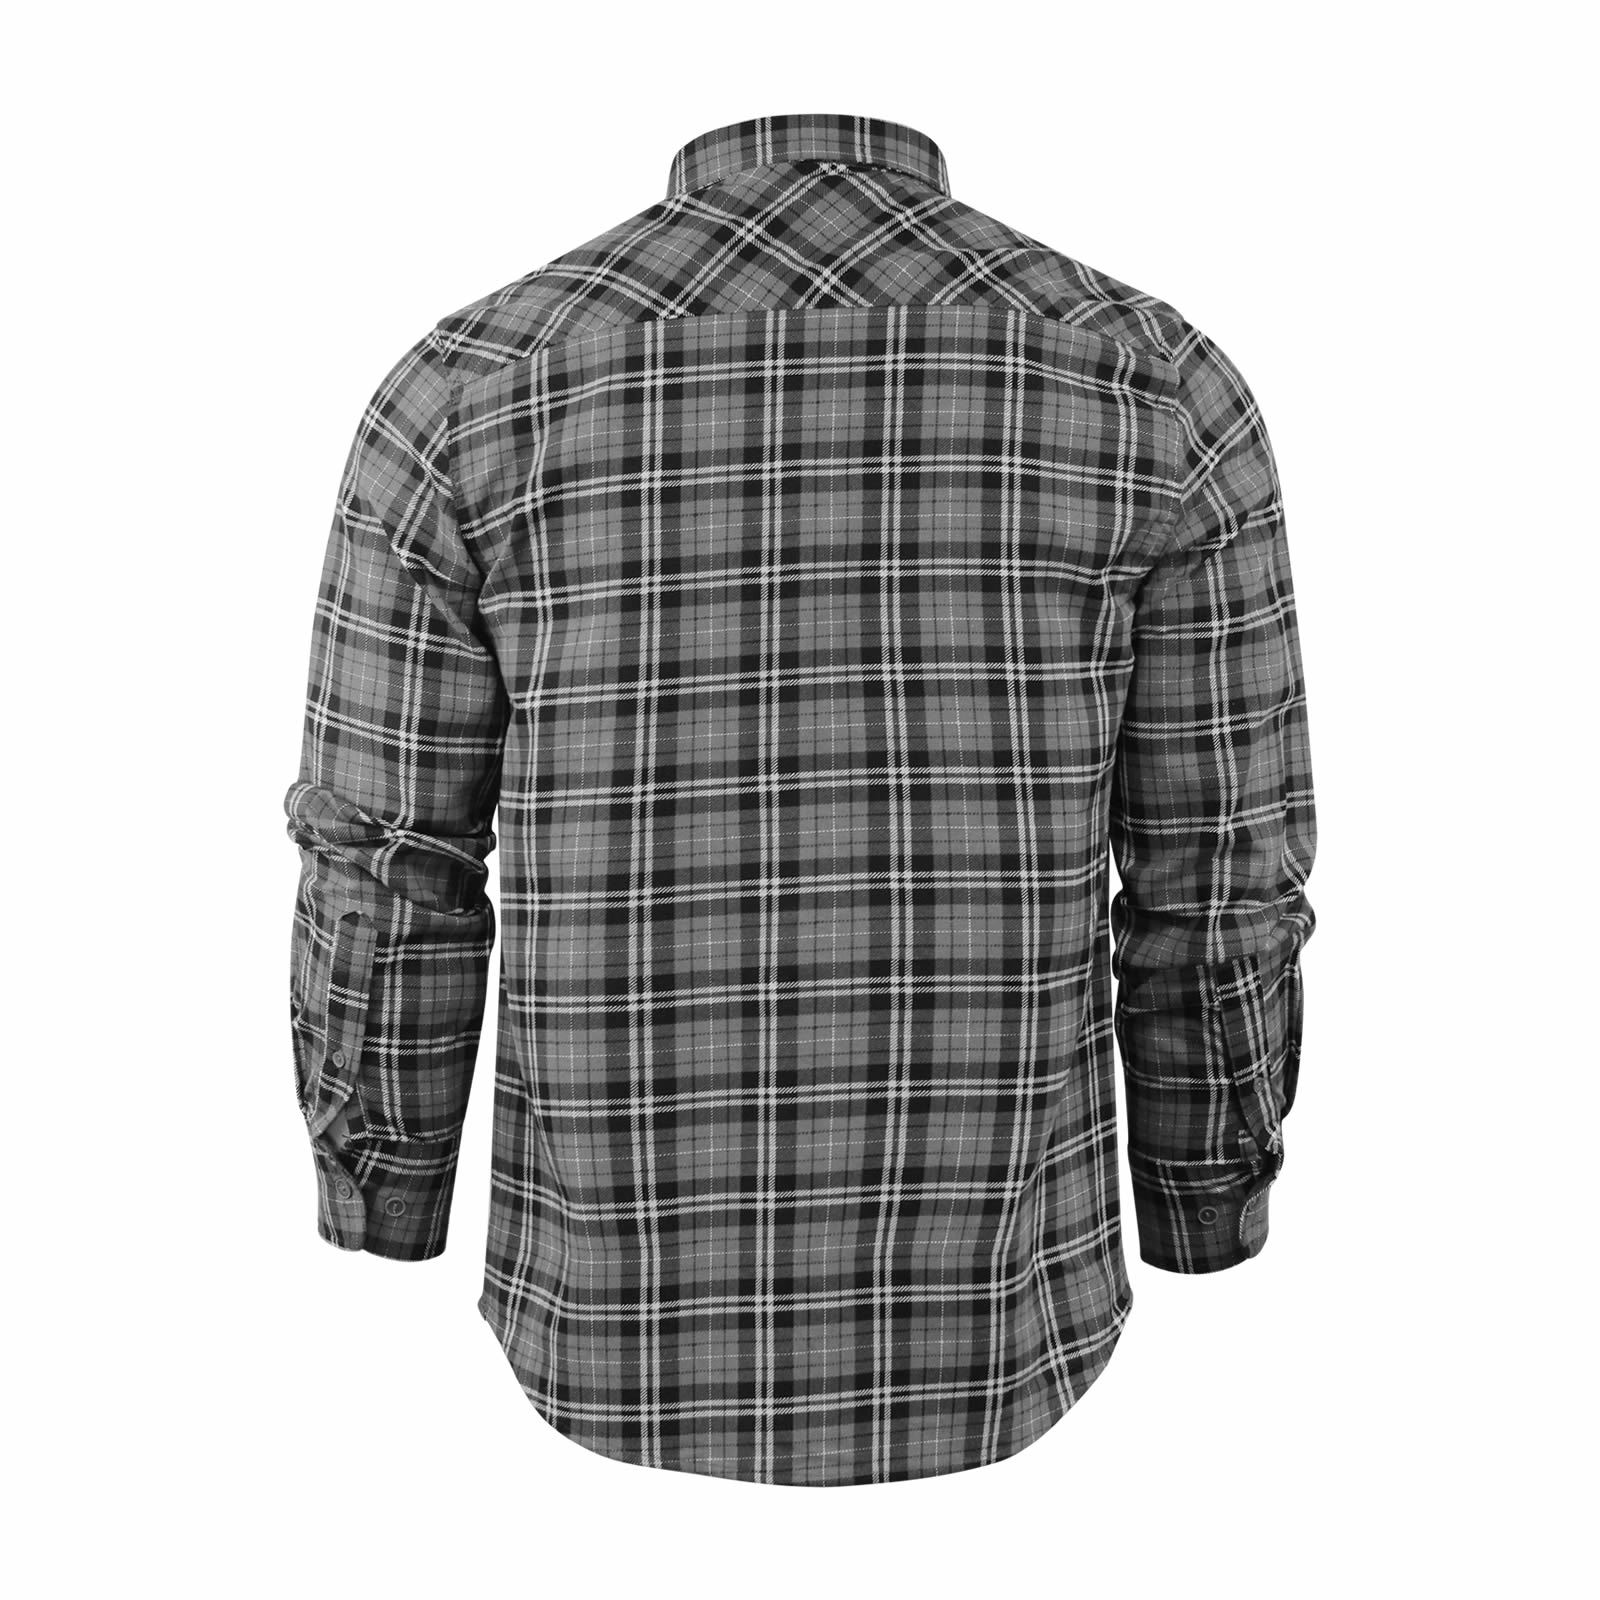 Mens-Check-Shirt-Brave-Soul-Flannel-Brushed-Cotton-Long-Sleeve-Casual-Top thumbnail 81